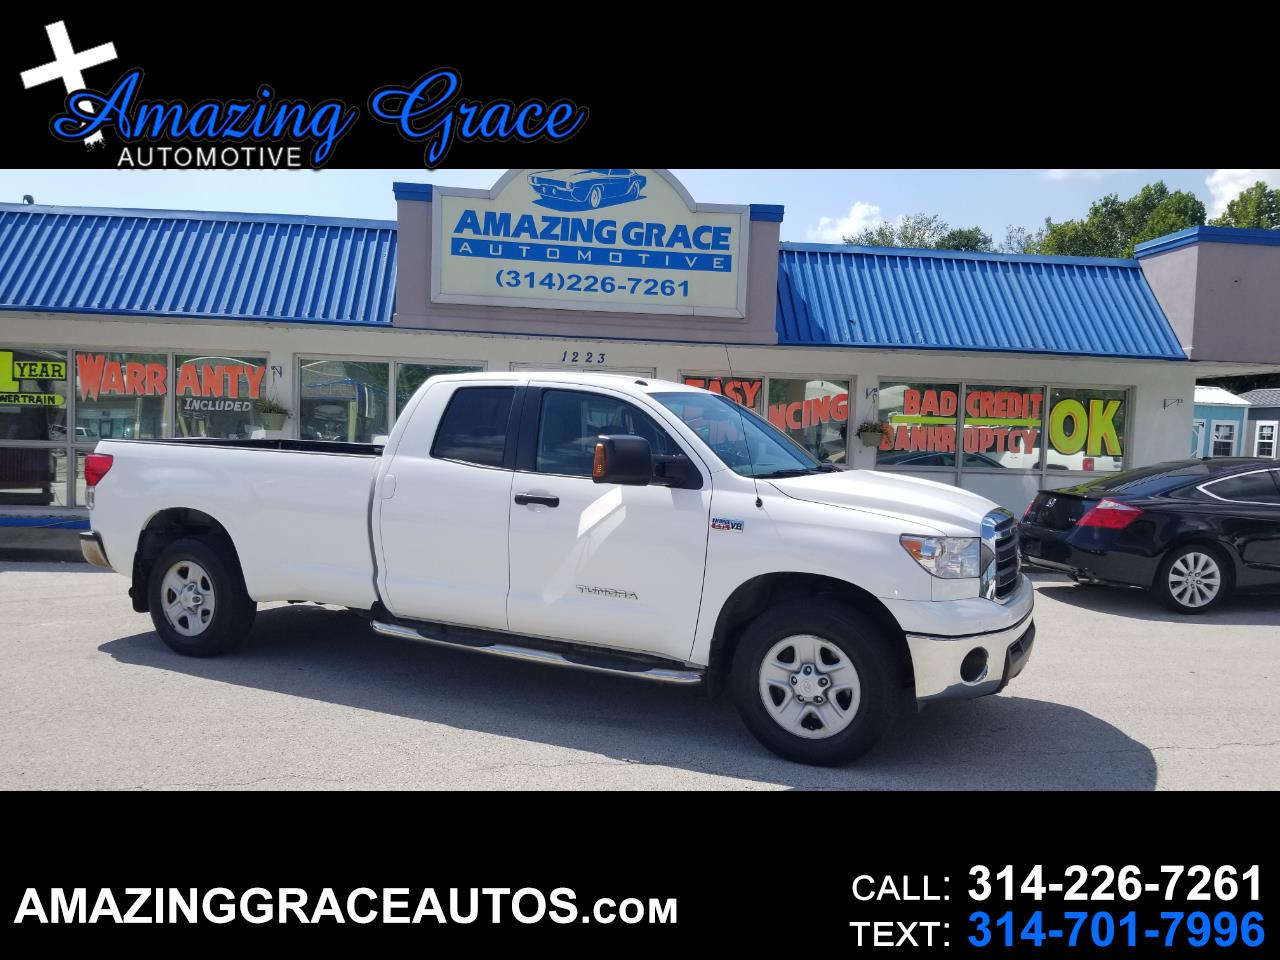 Toyota Tundra Tundra-Grade 5.7L FFV Double Cab Long Bed 4WD 2012